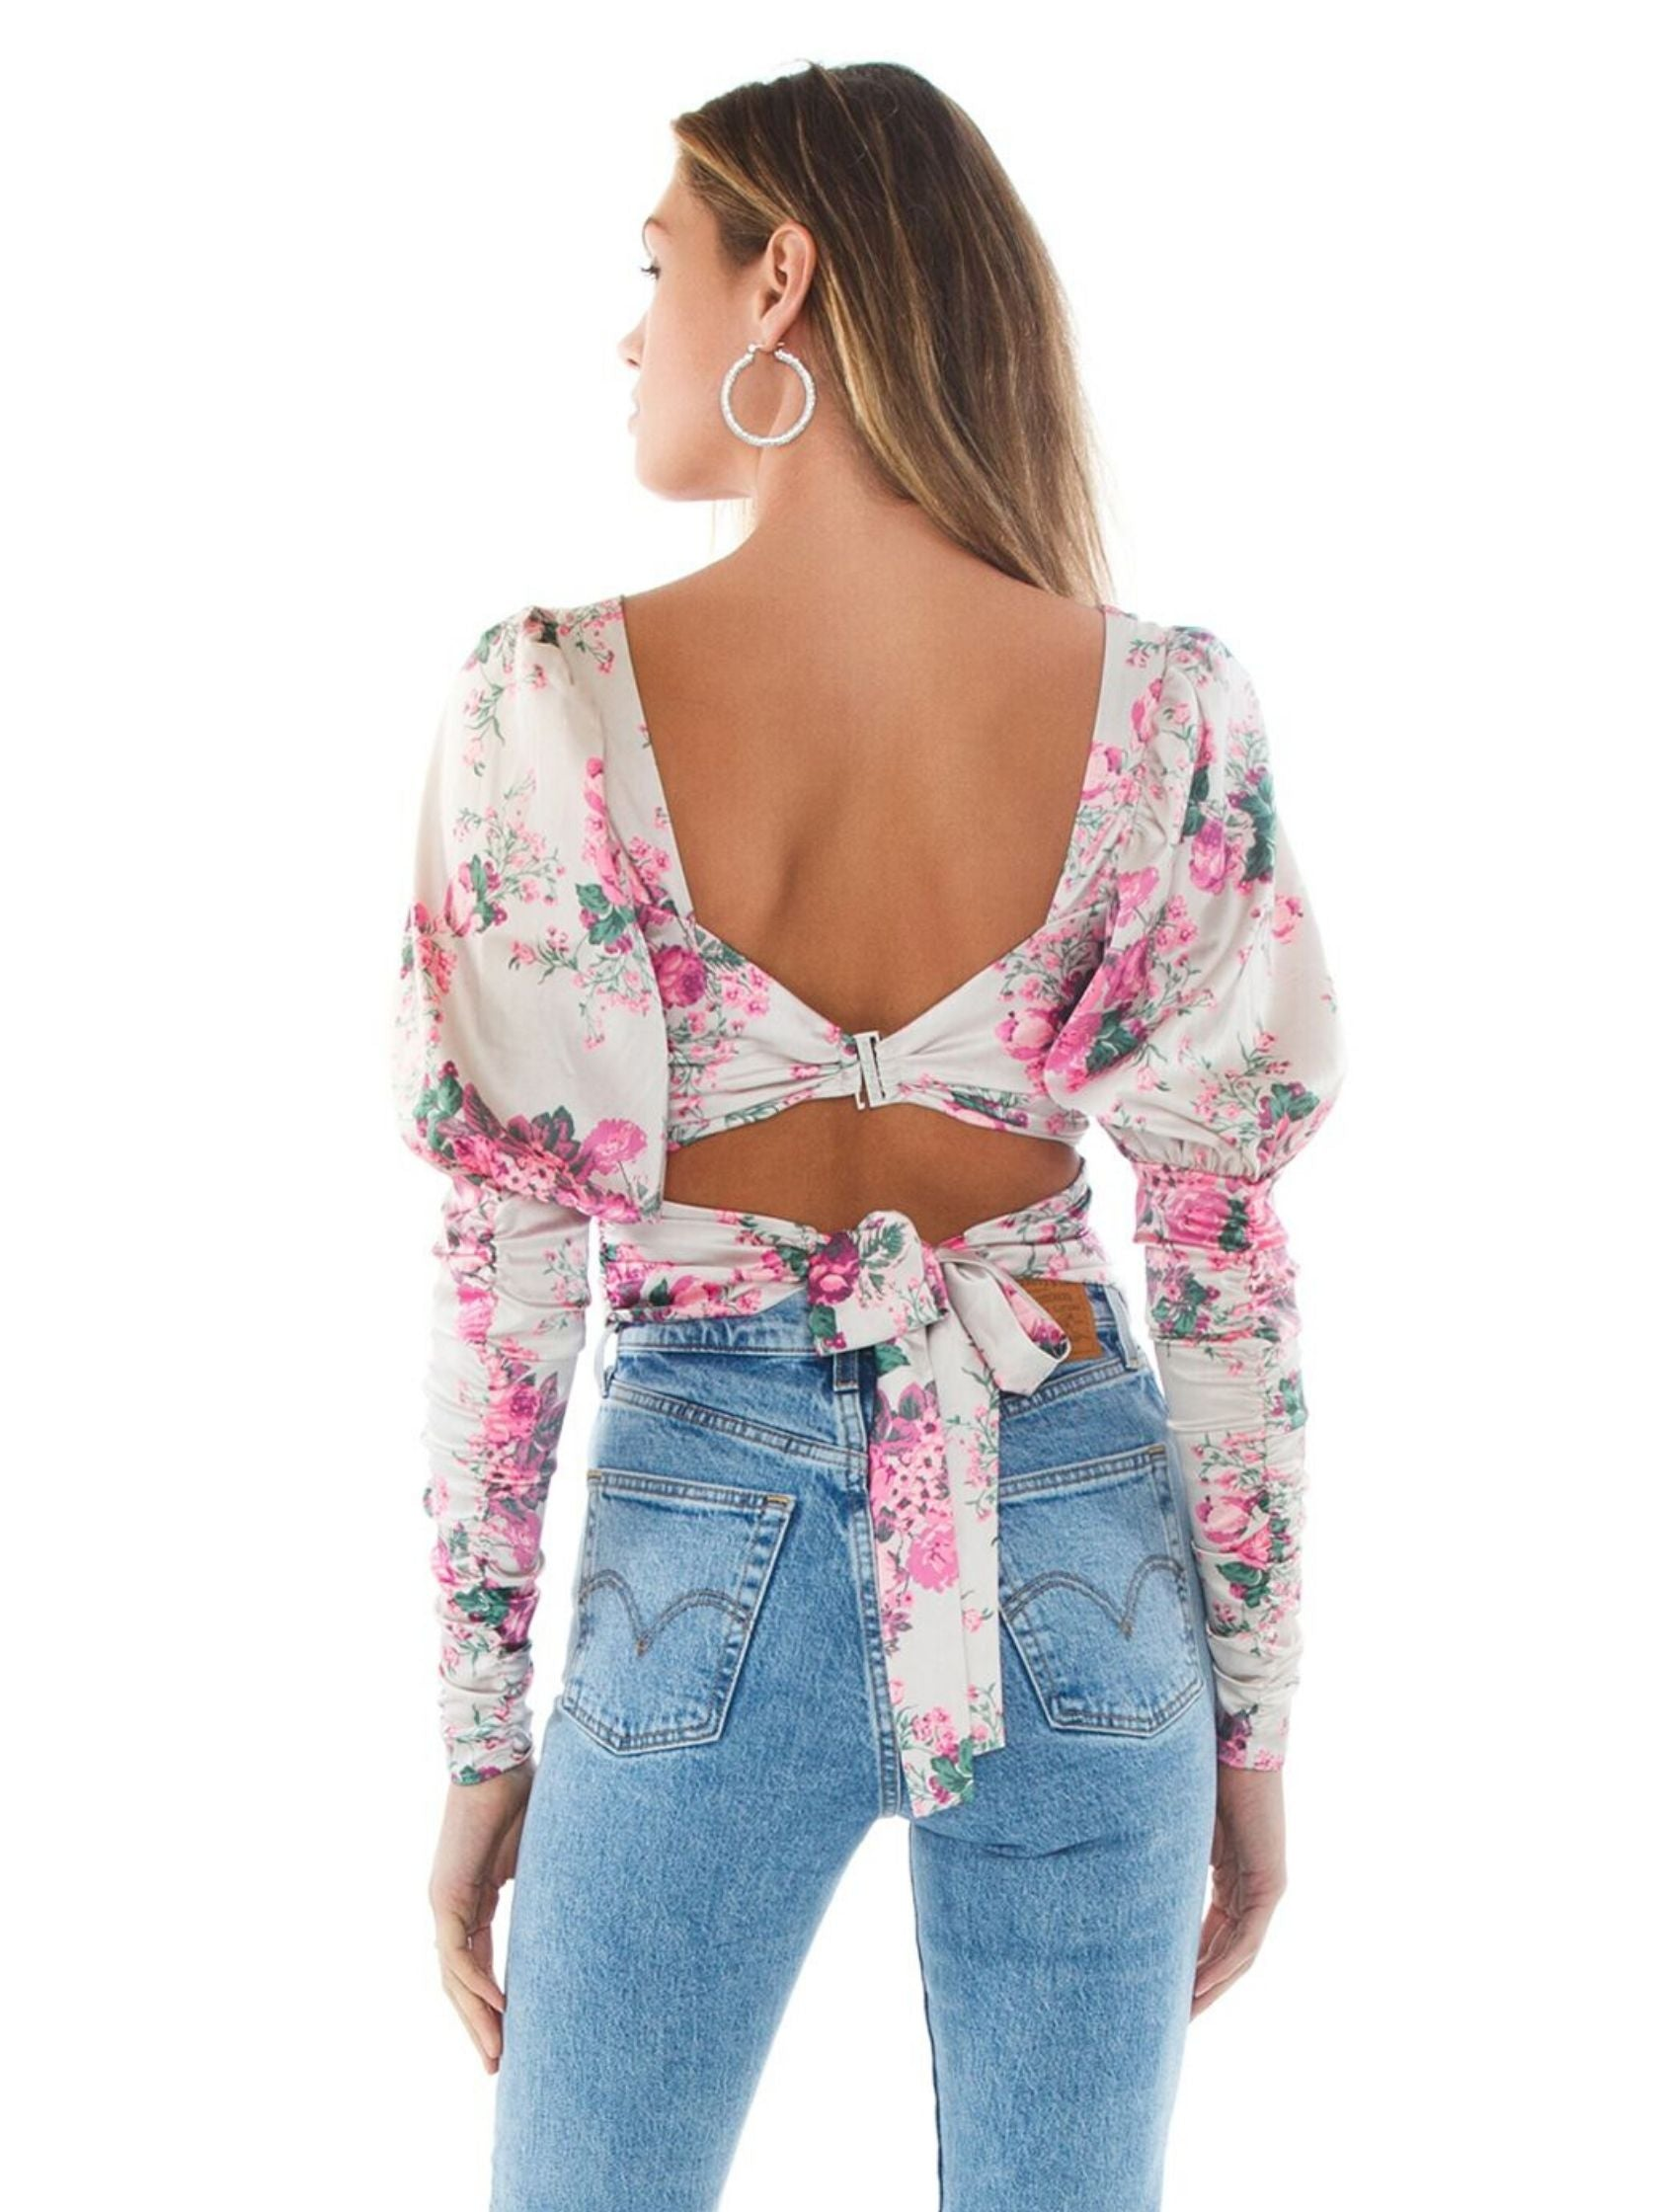 Women outfit in a top rental from For Love & Lemons called Palais Floral Crop Top